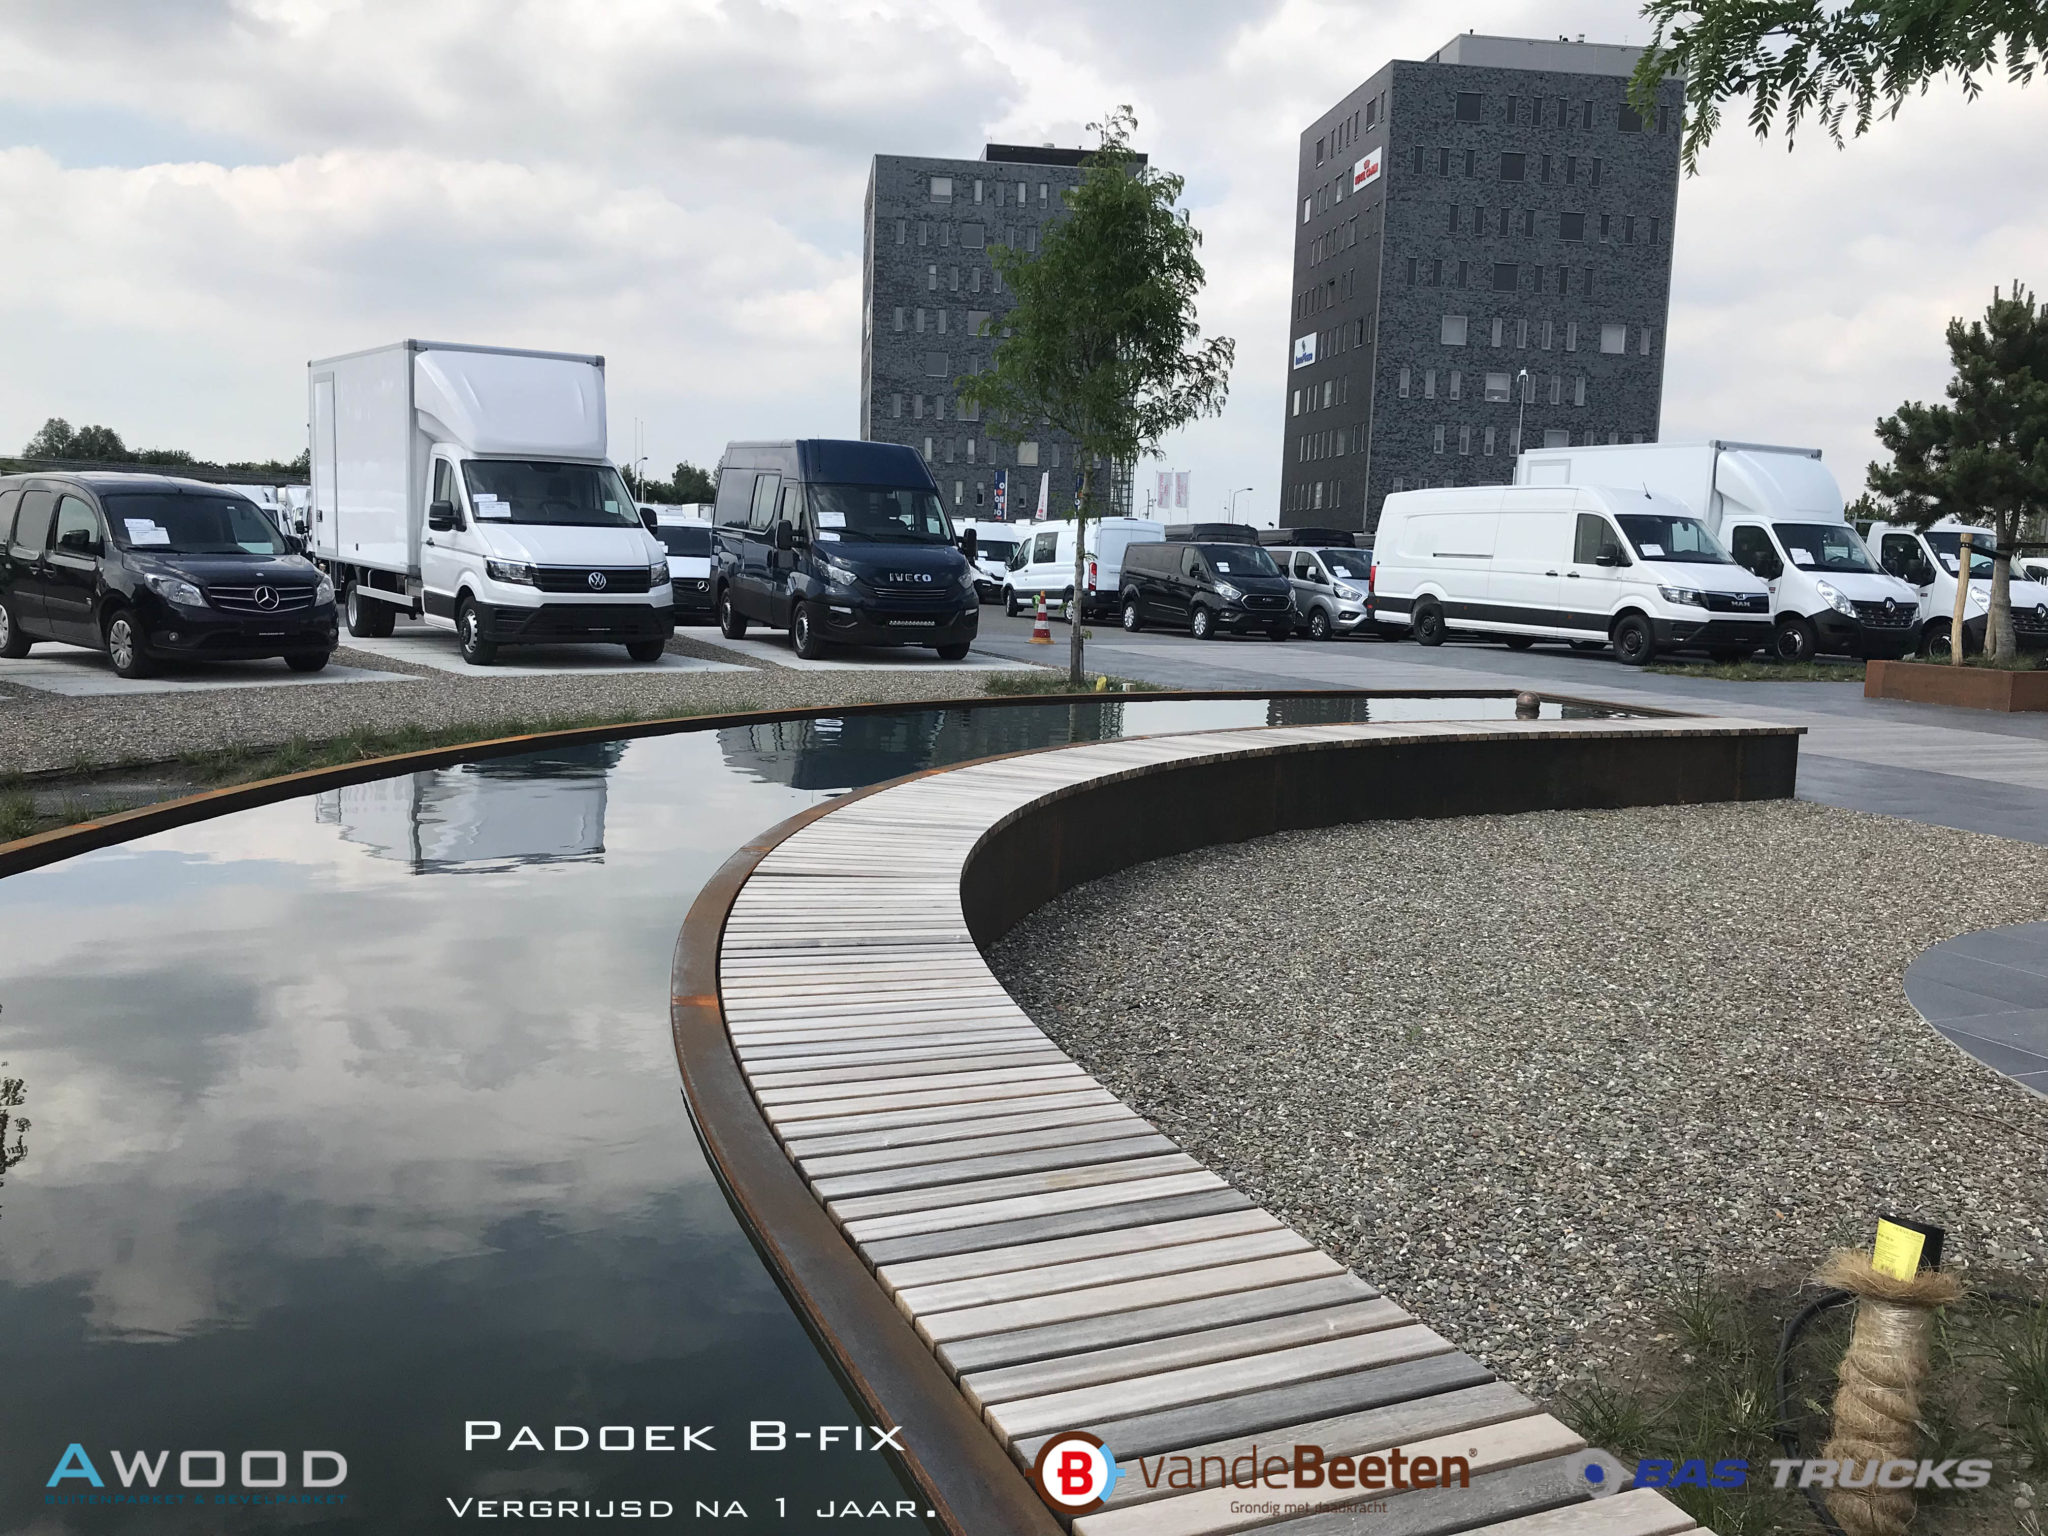 Padoek B-fix Bas Trucks Van de Beeten Awood 3